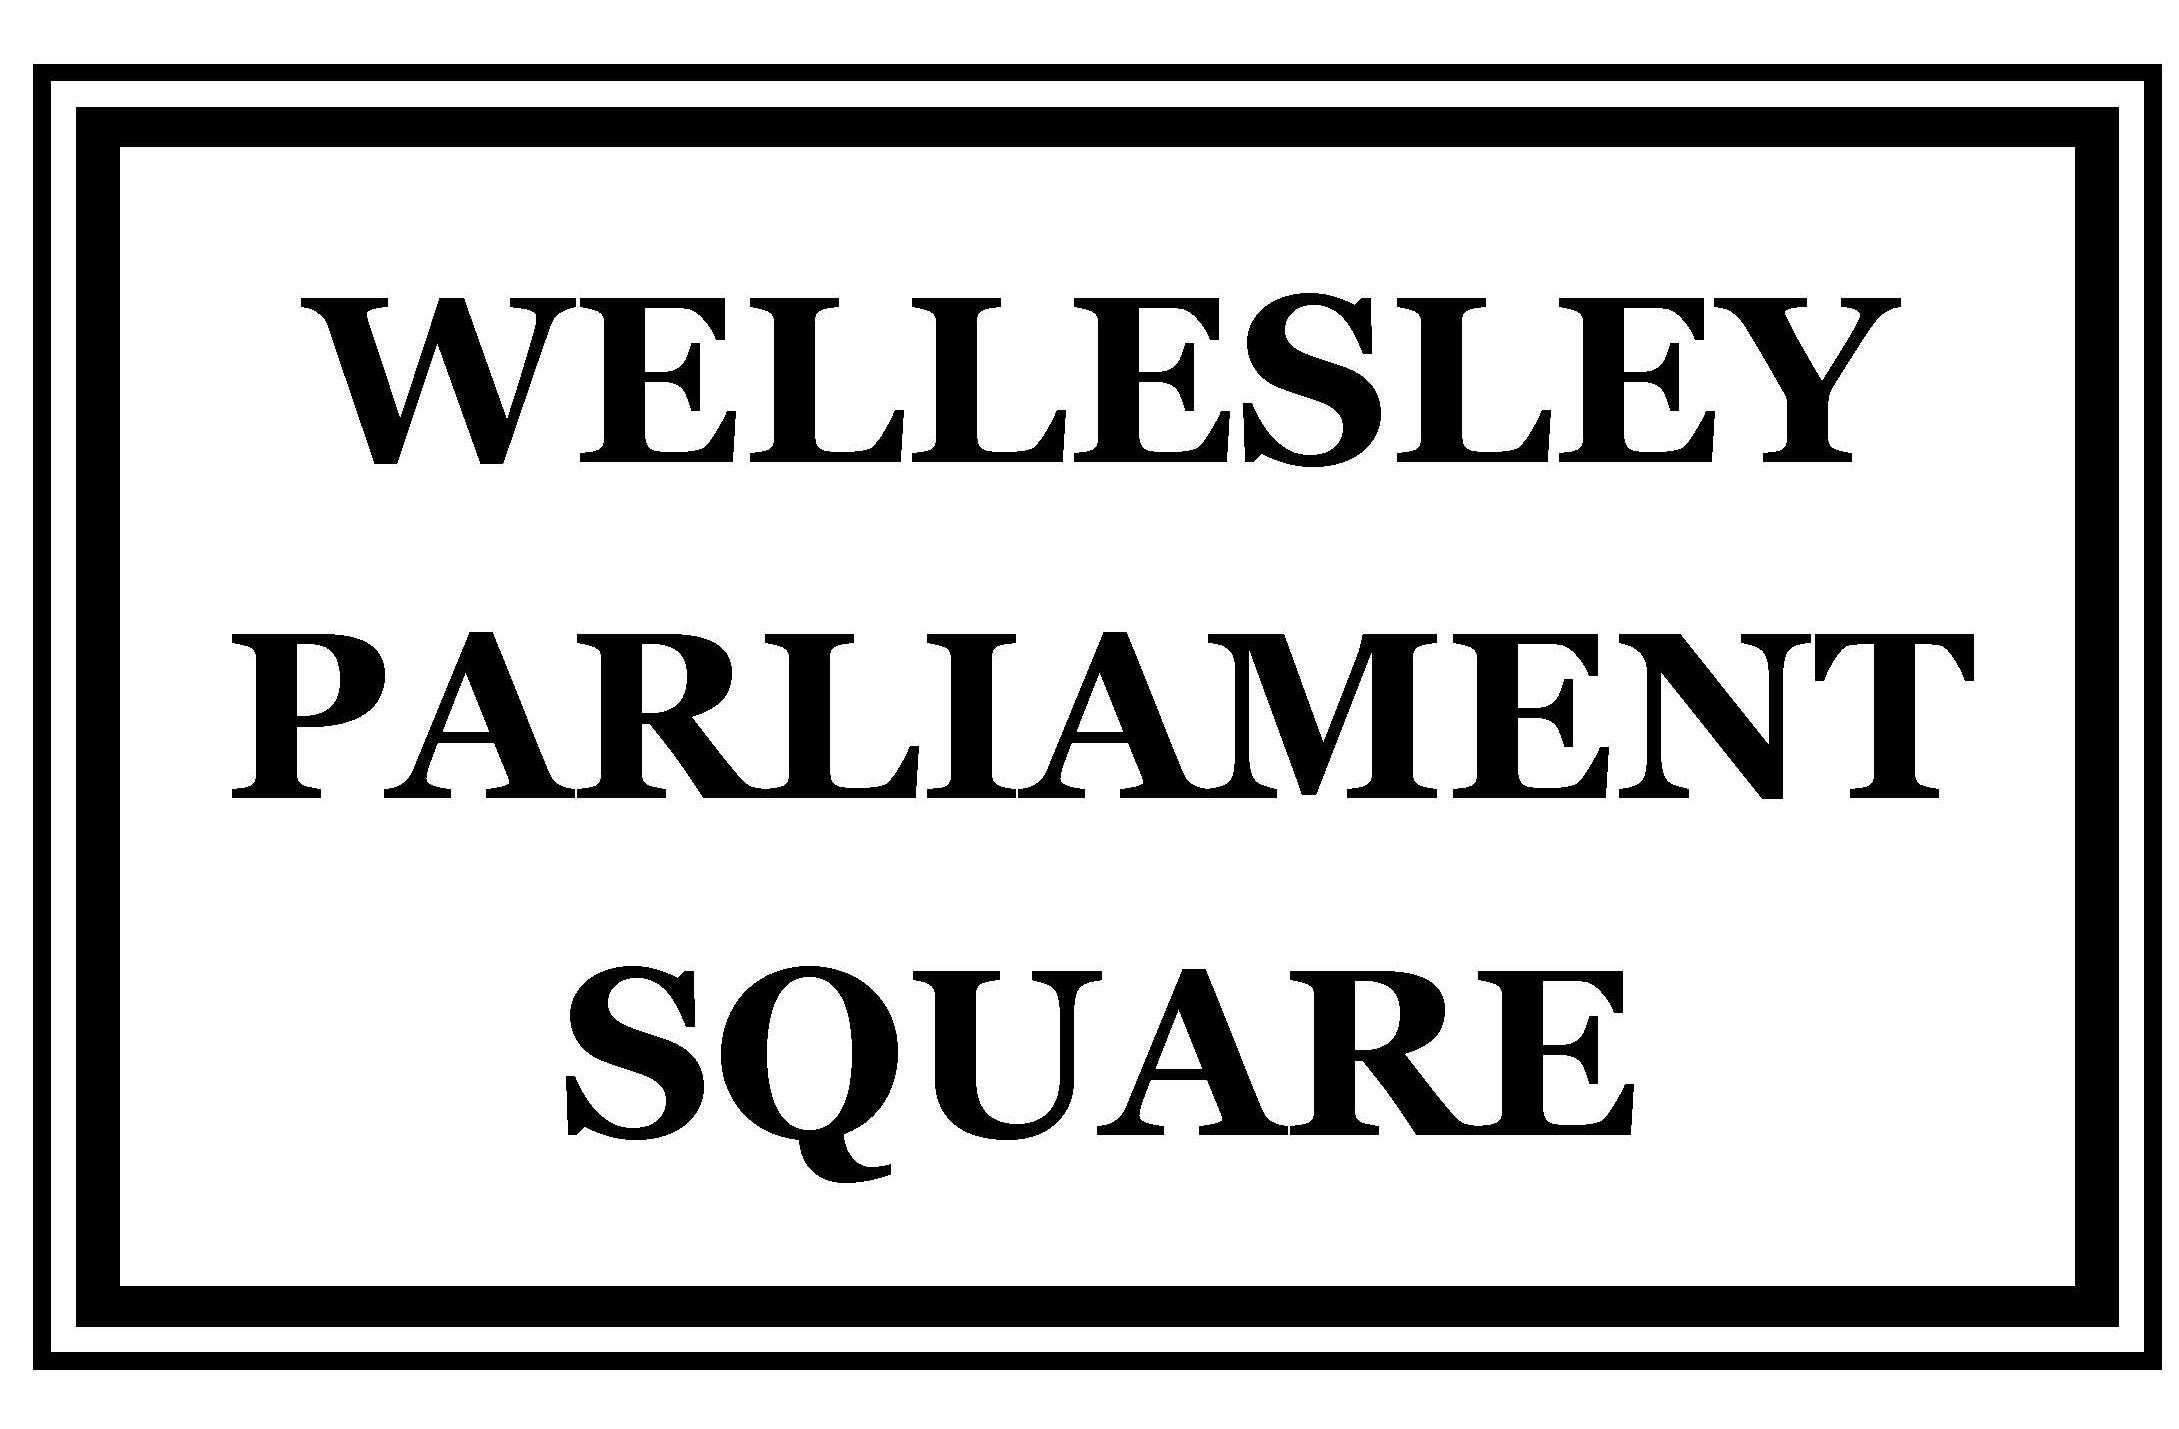 WELLESLEY PARLIAMENT LOGO (CORRECT)